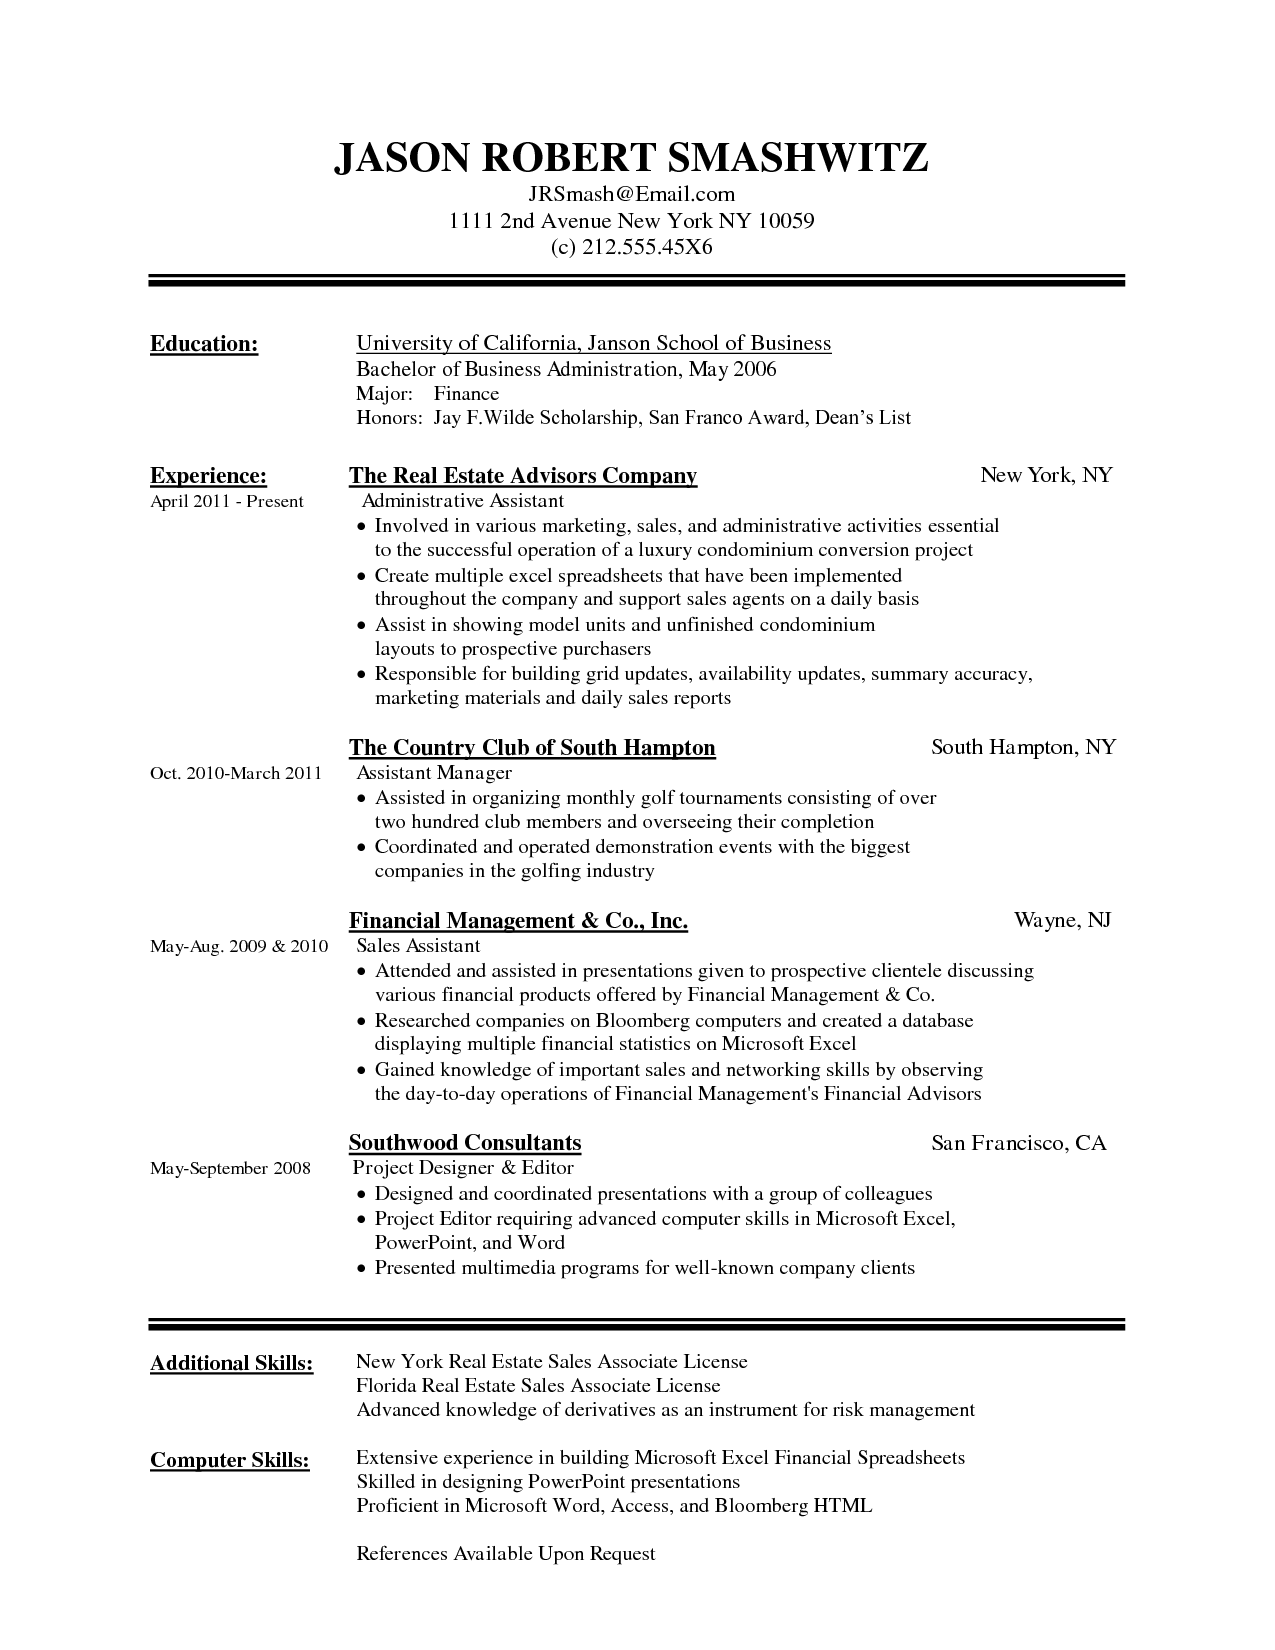 microsoft word template resume microsoft word resume templates task list templates 23656 | microsoft word resume templates education background resume template for ms word microsoft experience company additional skills computer skills language hobbies accomplishments achi iHAEwC